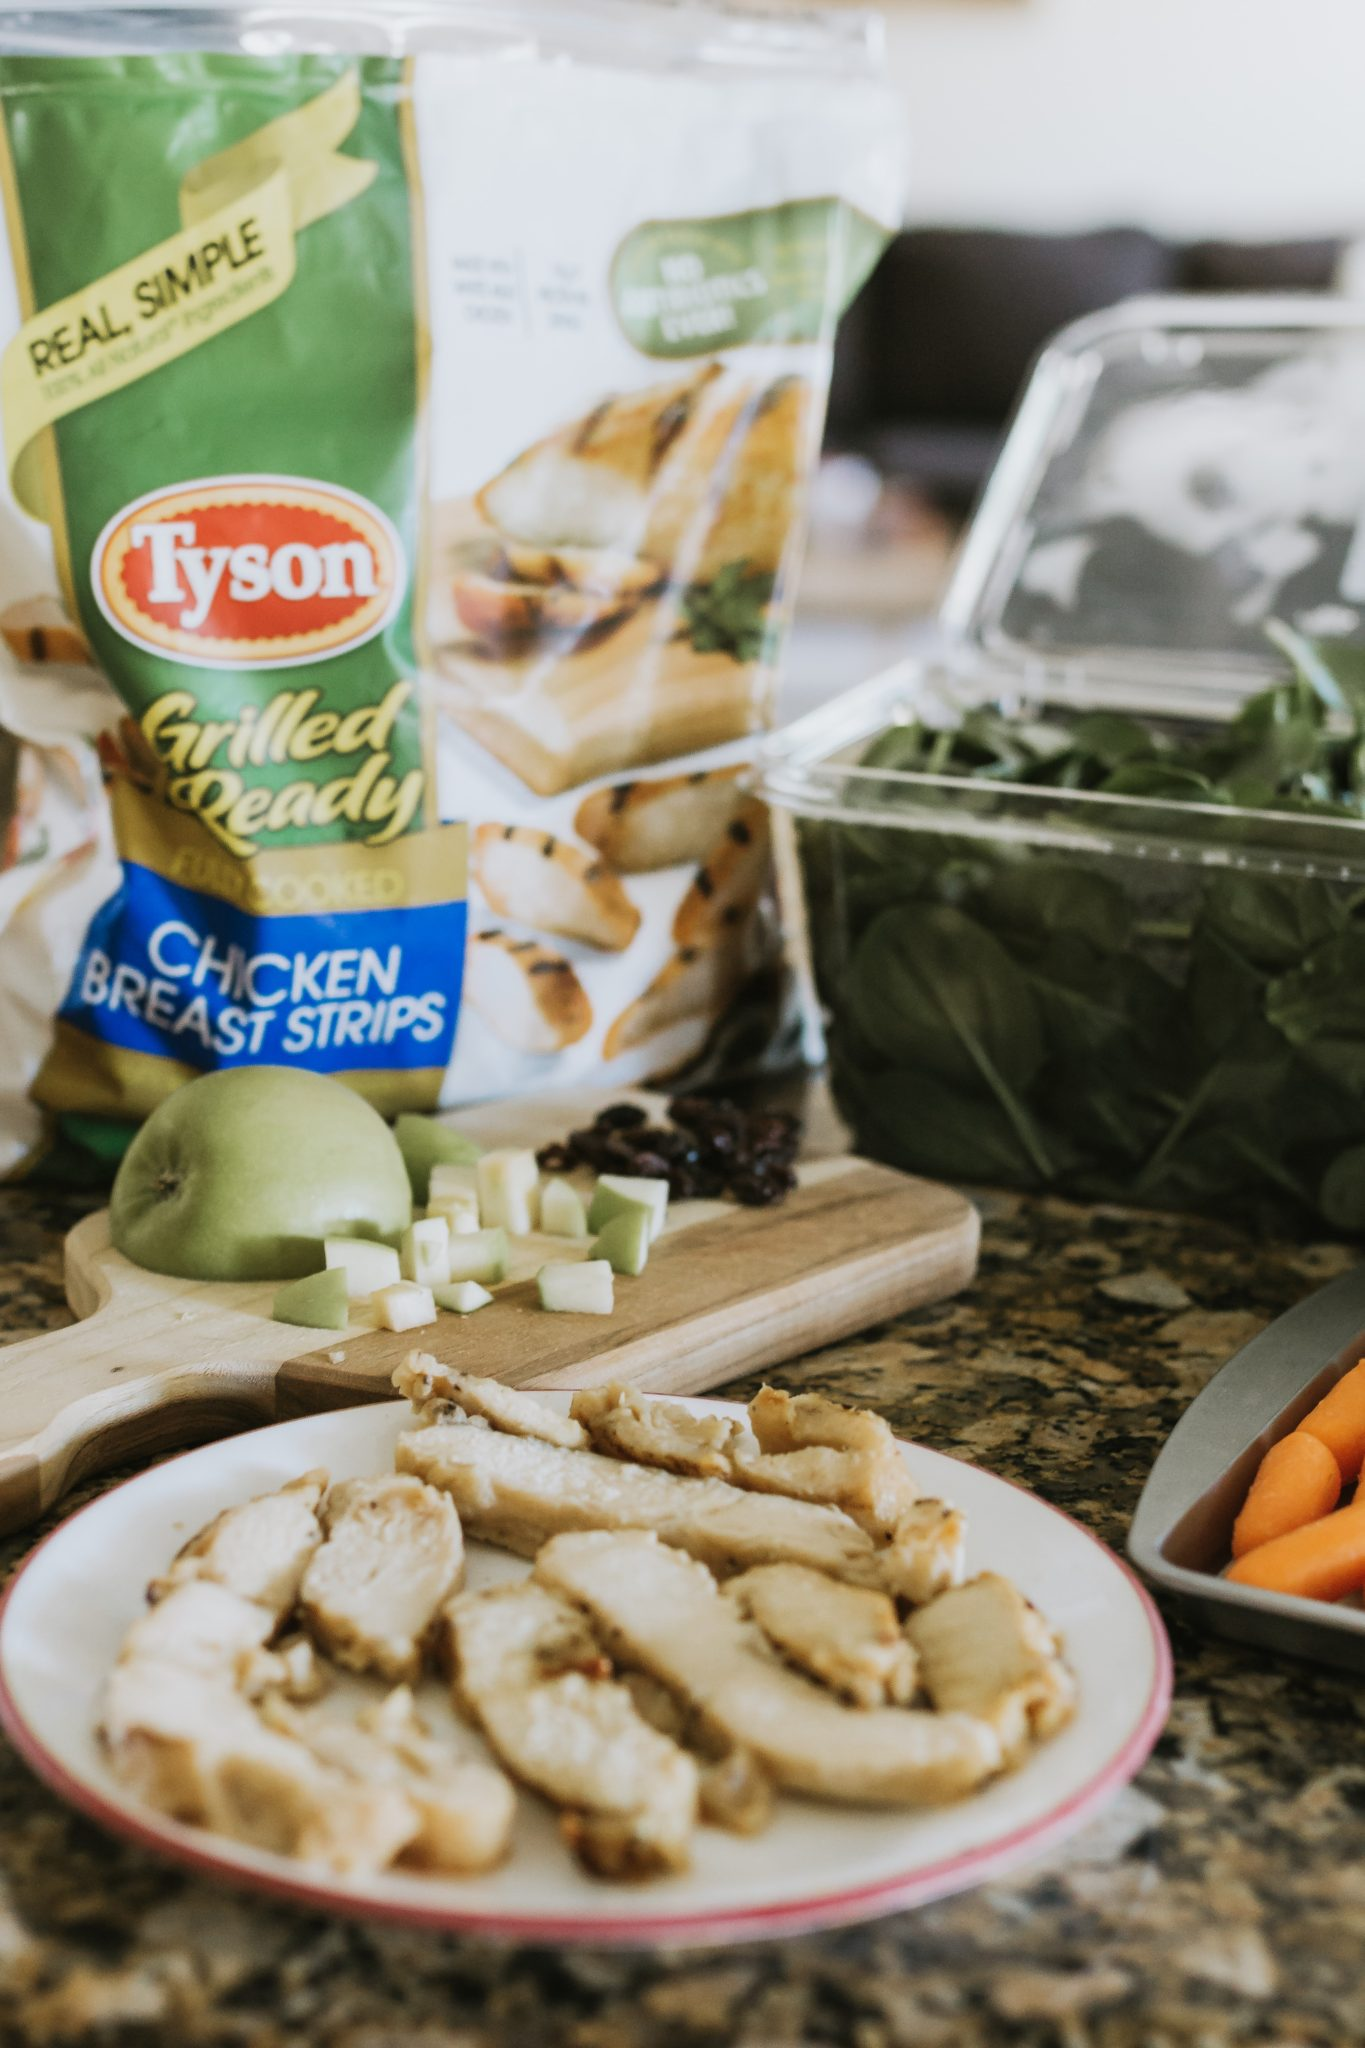 simple make ahead lunch ideas for making prep easier #ad #TysonBetterChoices #SamsClub